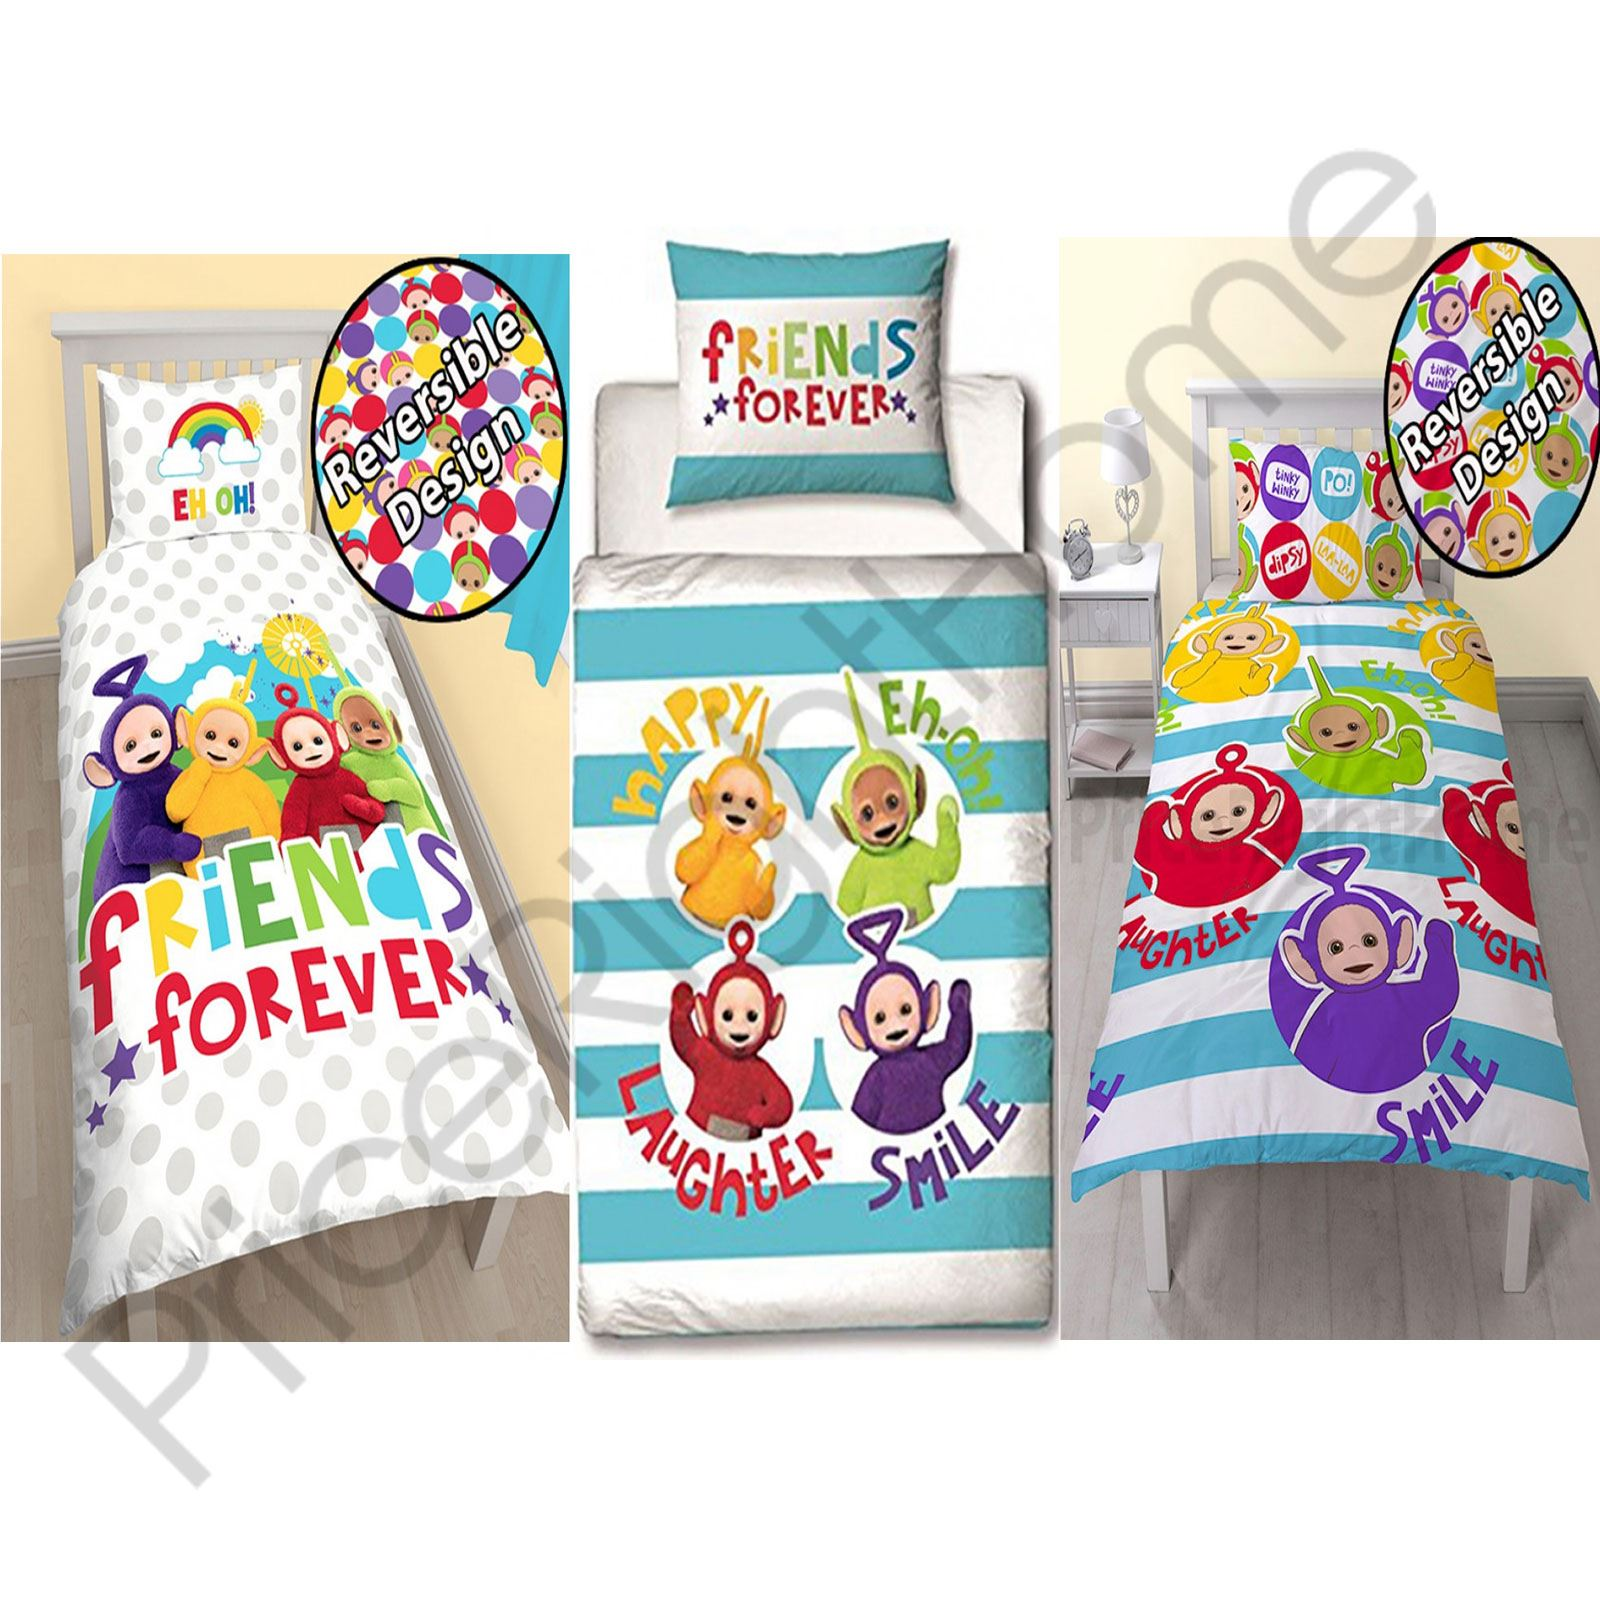 teletubbies duver cover sets available in single and junior toddler bedding new - Toddler Bedding